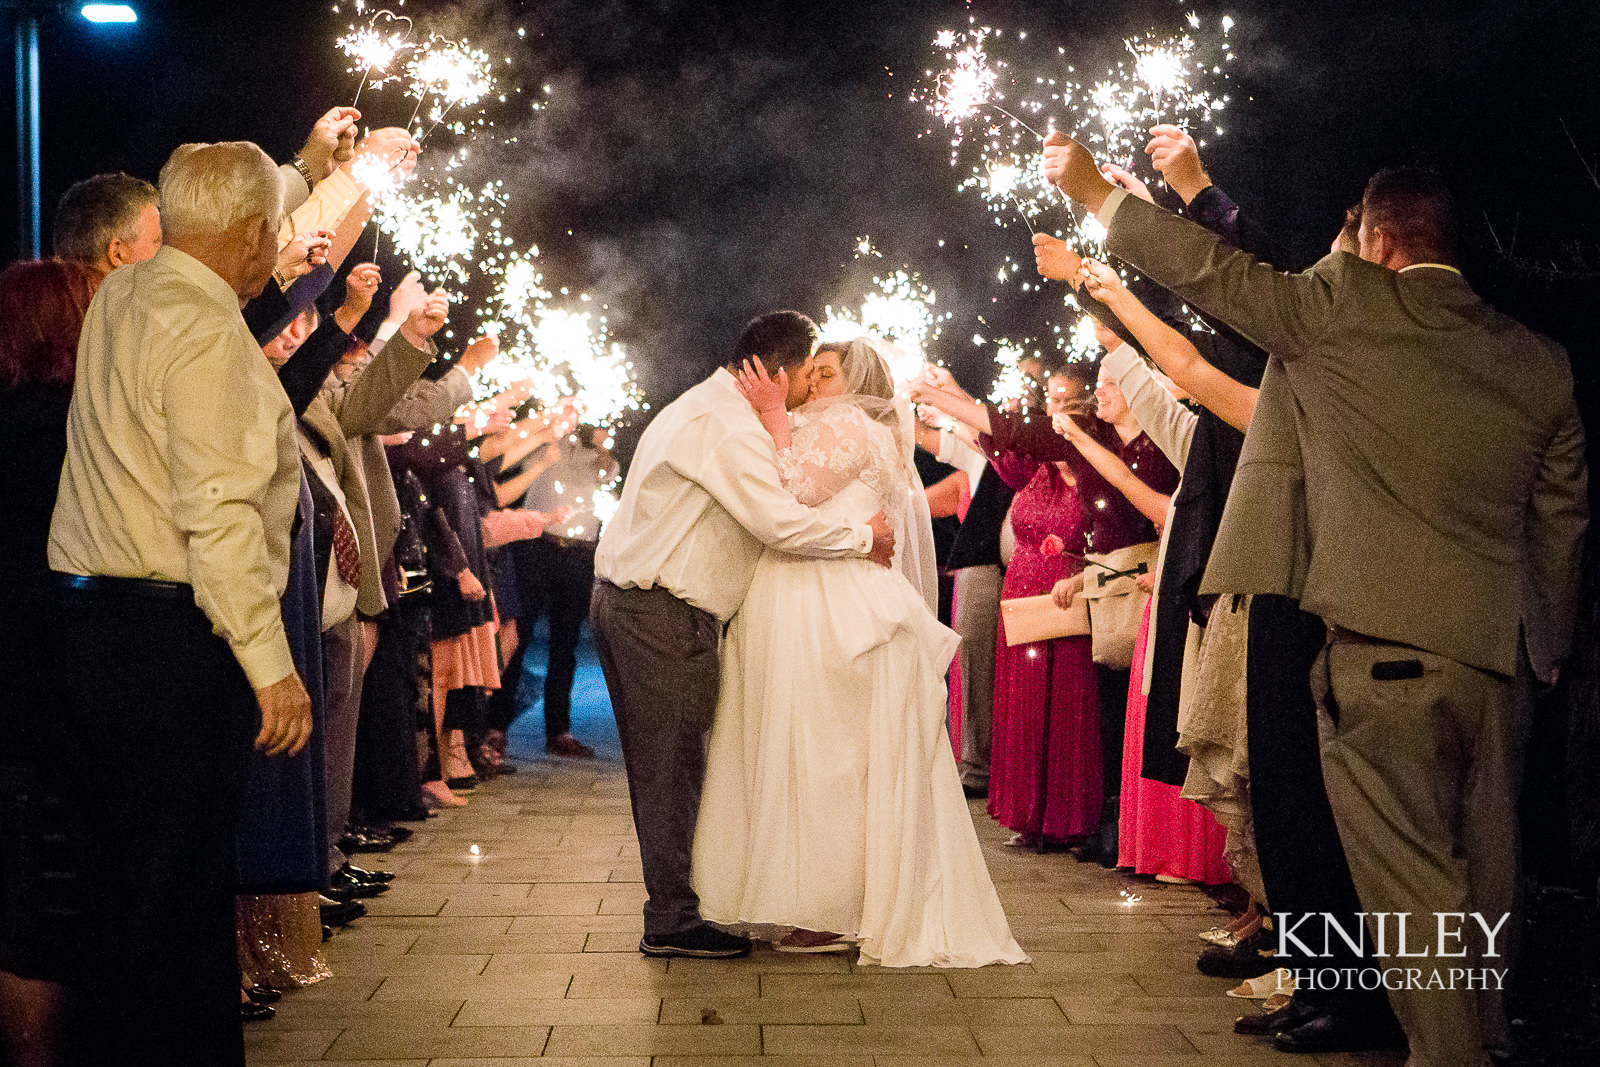 120 - Woodcliff Hotel - Rochester NY wedding photo - Kniley Photography.jpg